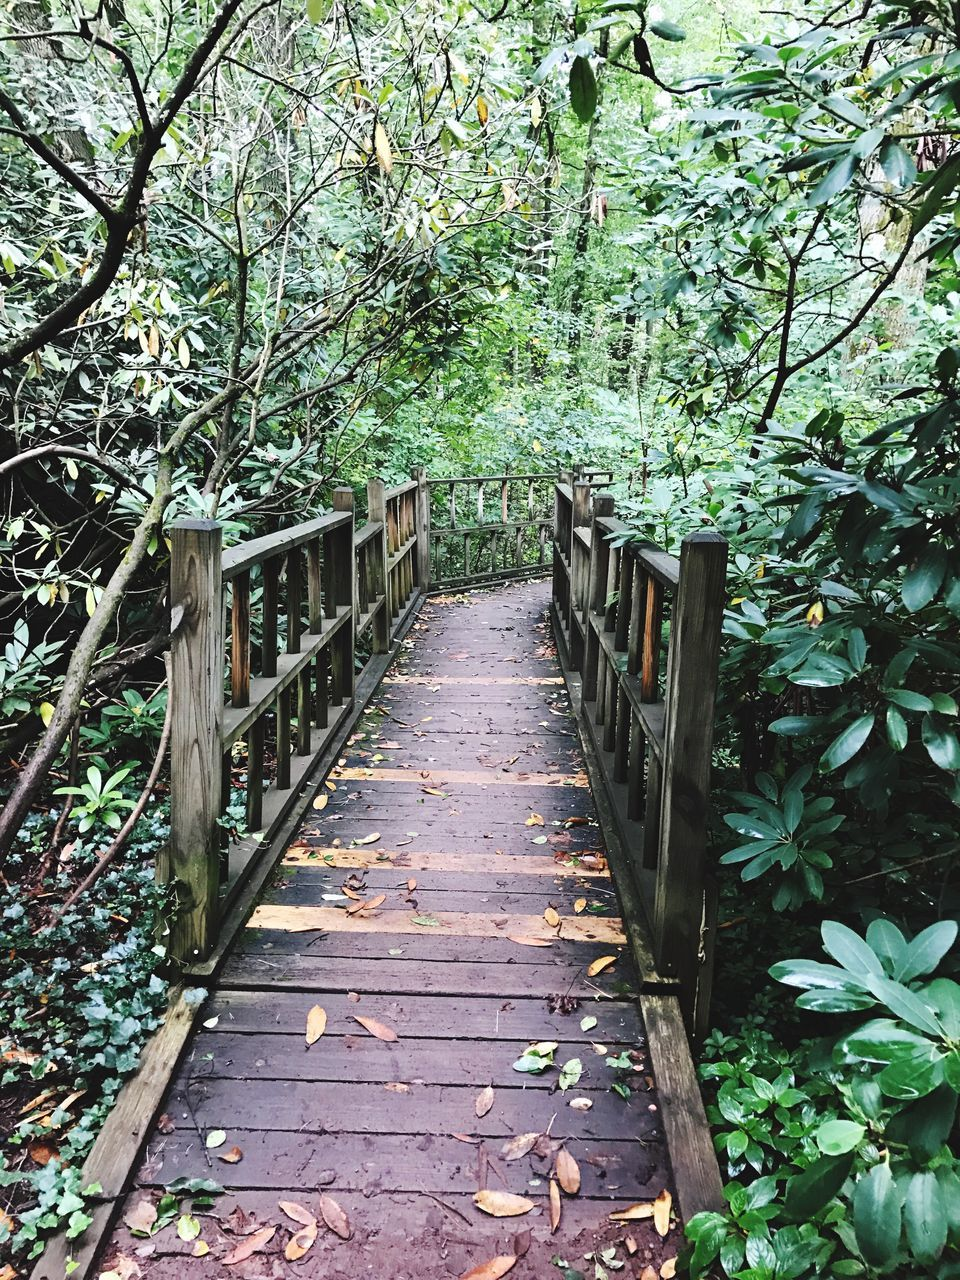 tree, growth, nature, leaf, railing, outdoors, tranquility, day, beauty in nature, no people, plant, the way forward, footbridge, branch